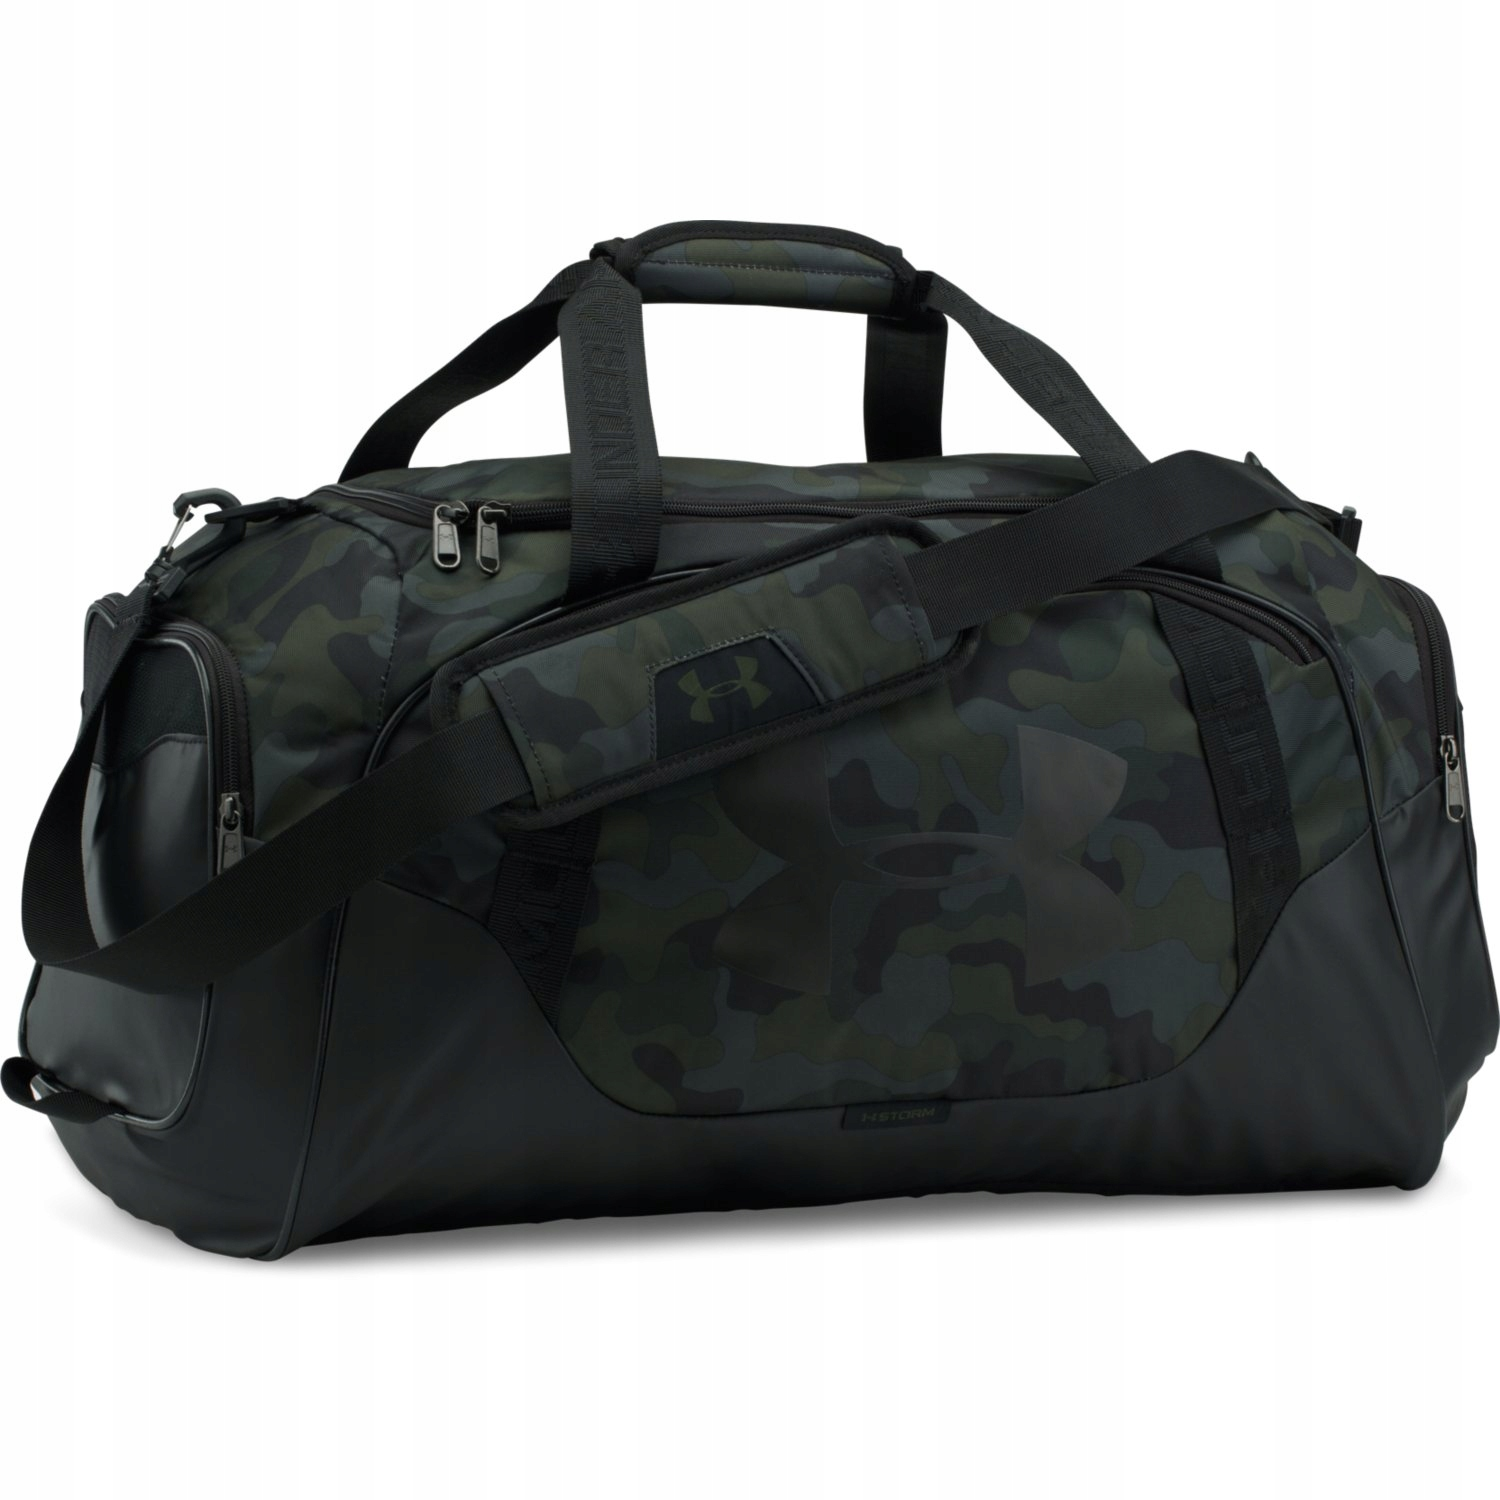 d7018ced7 Torba UNDER ARMOUR UNDENIABLE DUFFLE 3.0 S - 7448210359 - oficjalne ...